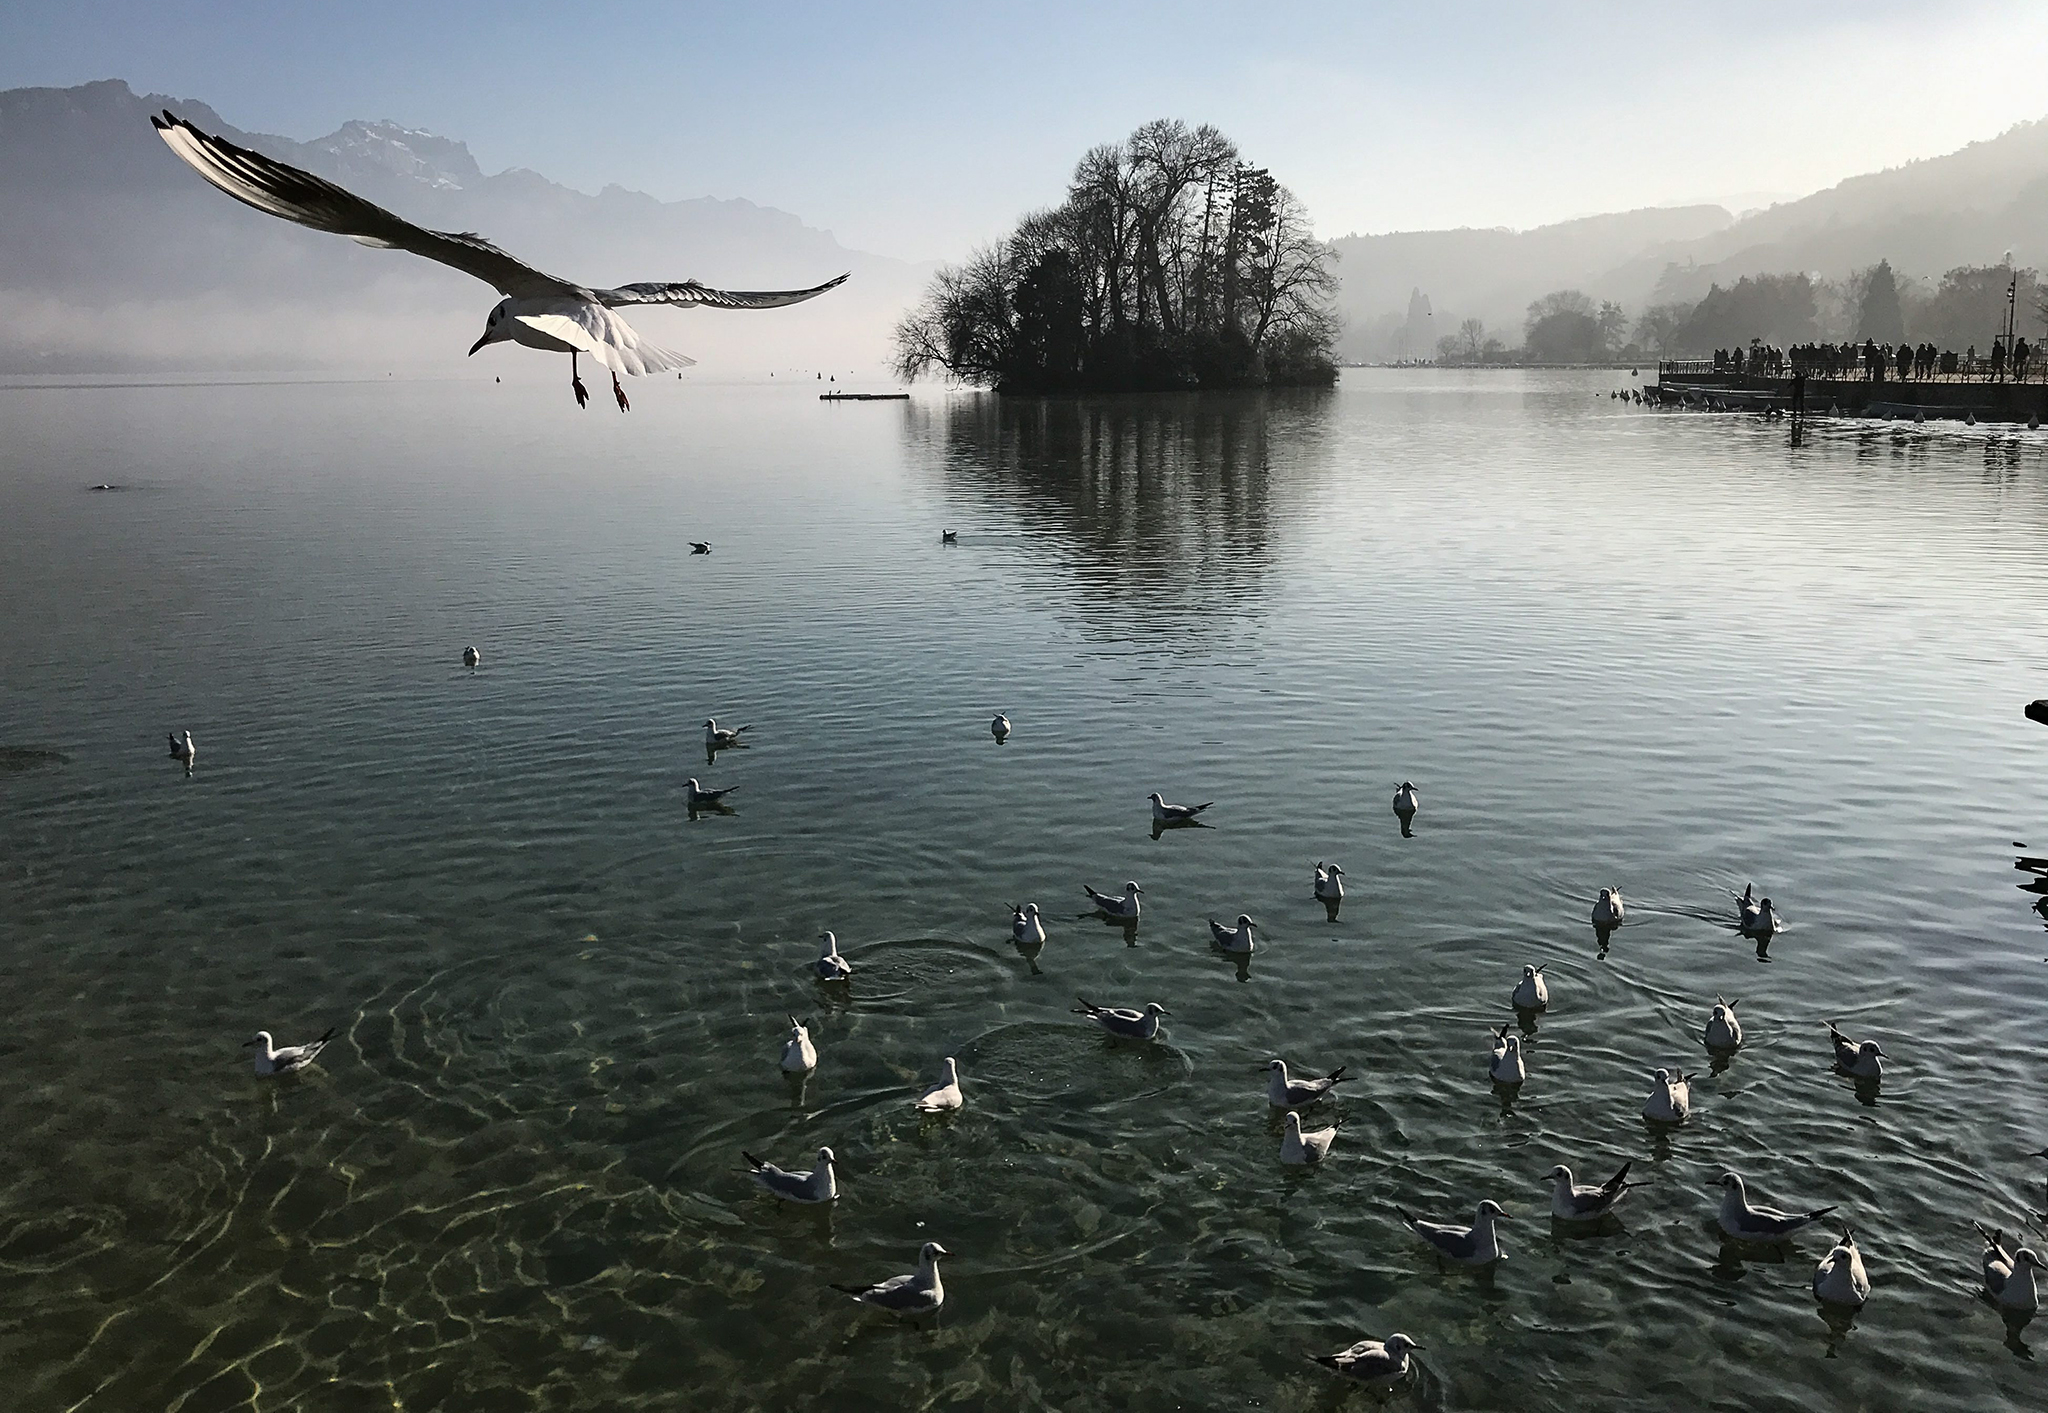 Seagulls fly above Lake Annecy in the town of Annecy, France, 01 January 2017 (issued 03 January). Annecy is a town in the Rhone-Alpes region of southeastern France. It is a popular tourist destination with many castles and cathedrals. It lies on the northern tip of Lake Annecy.  EPA/ROMAN PILIPEY